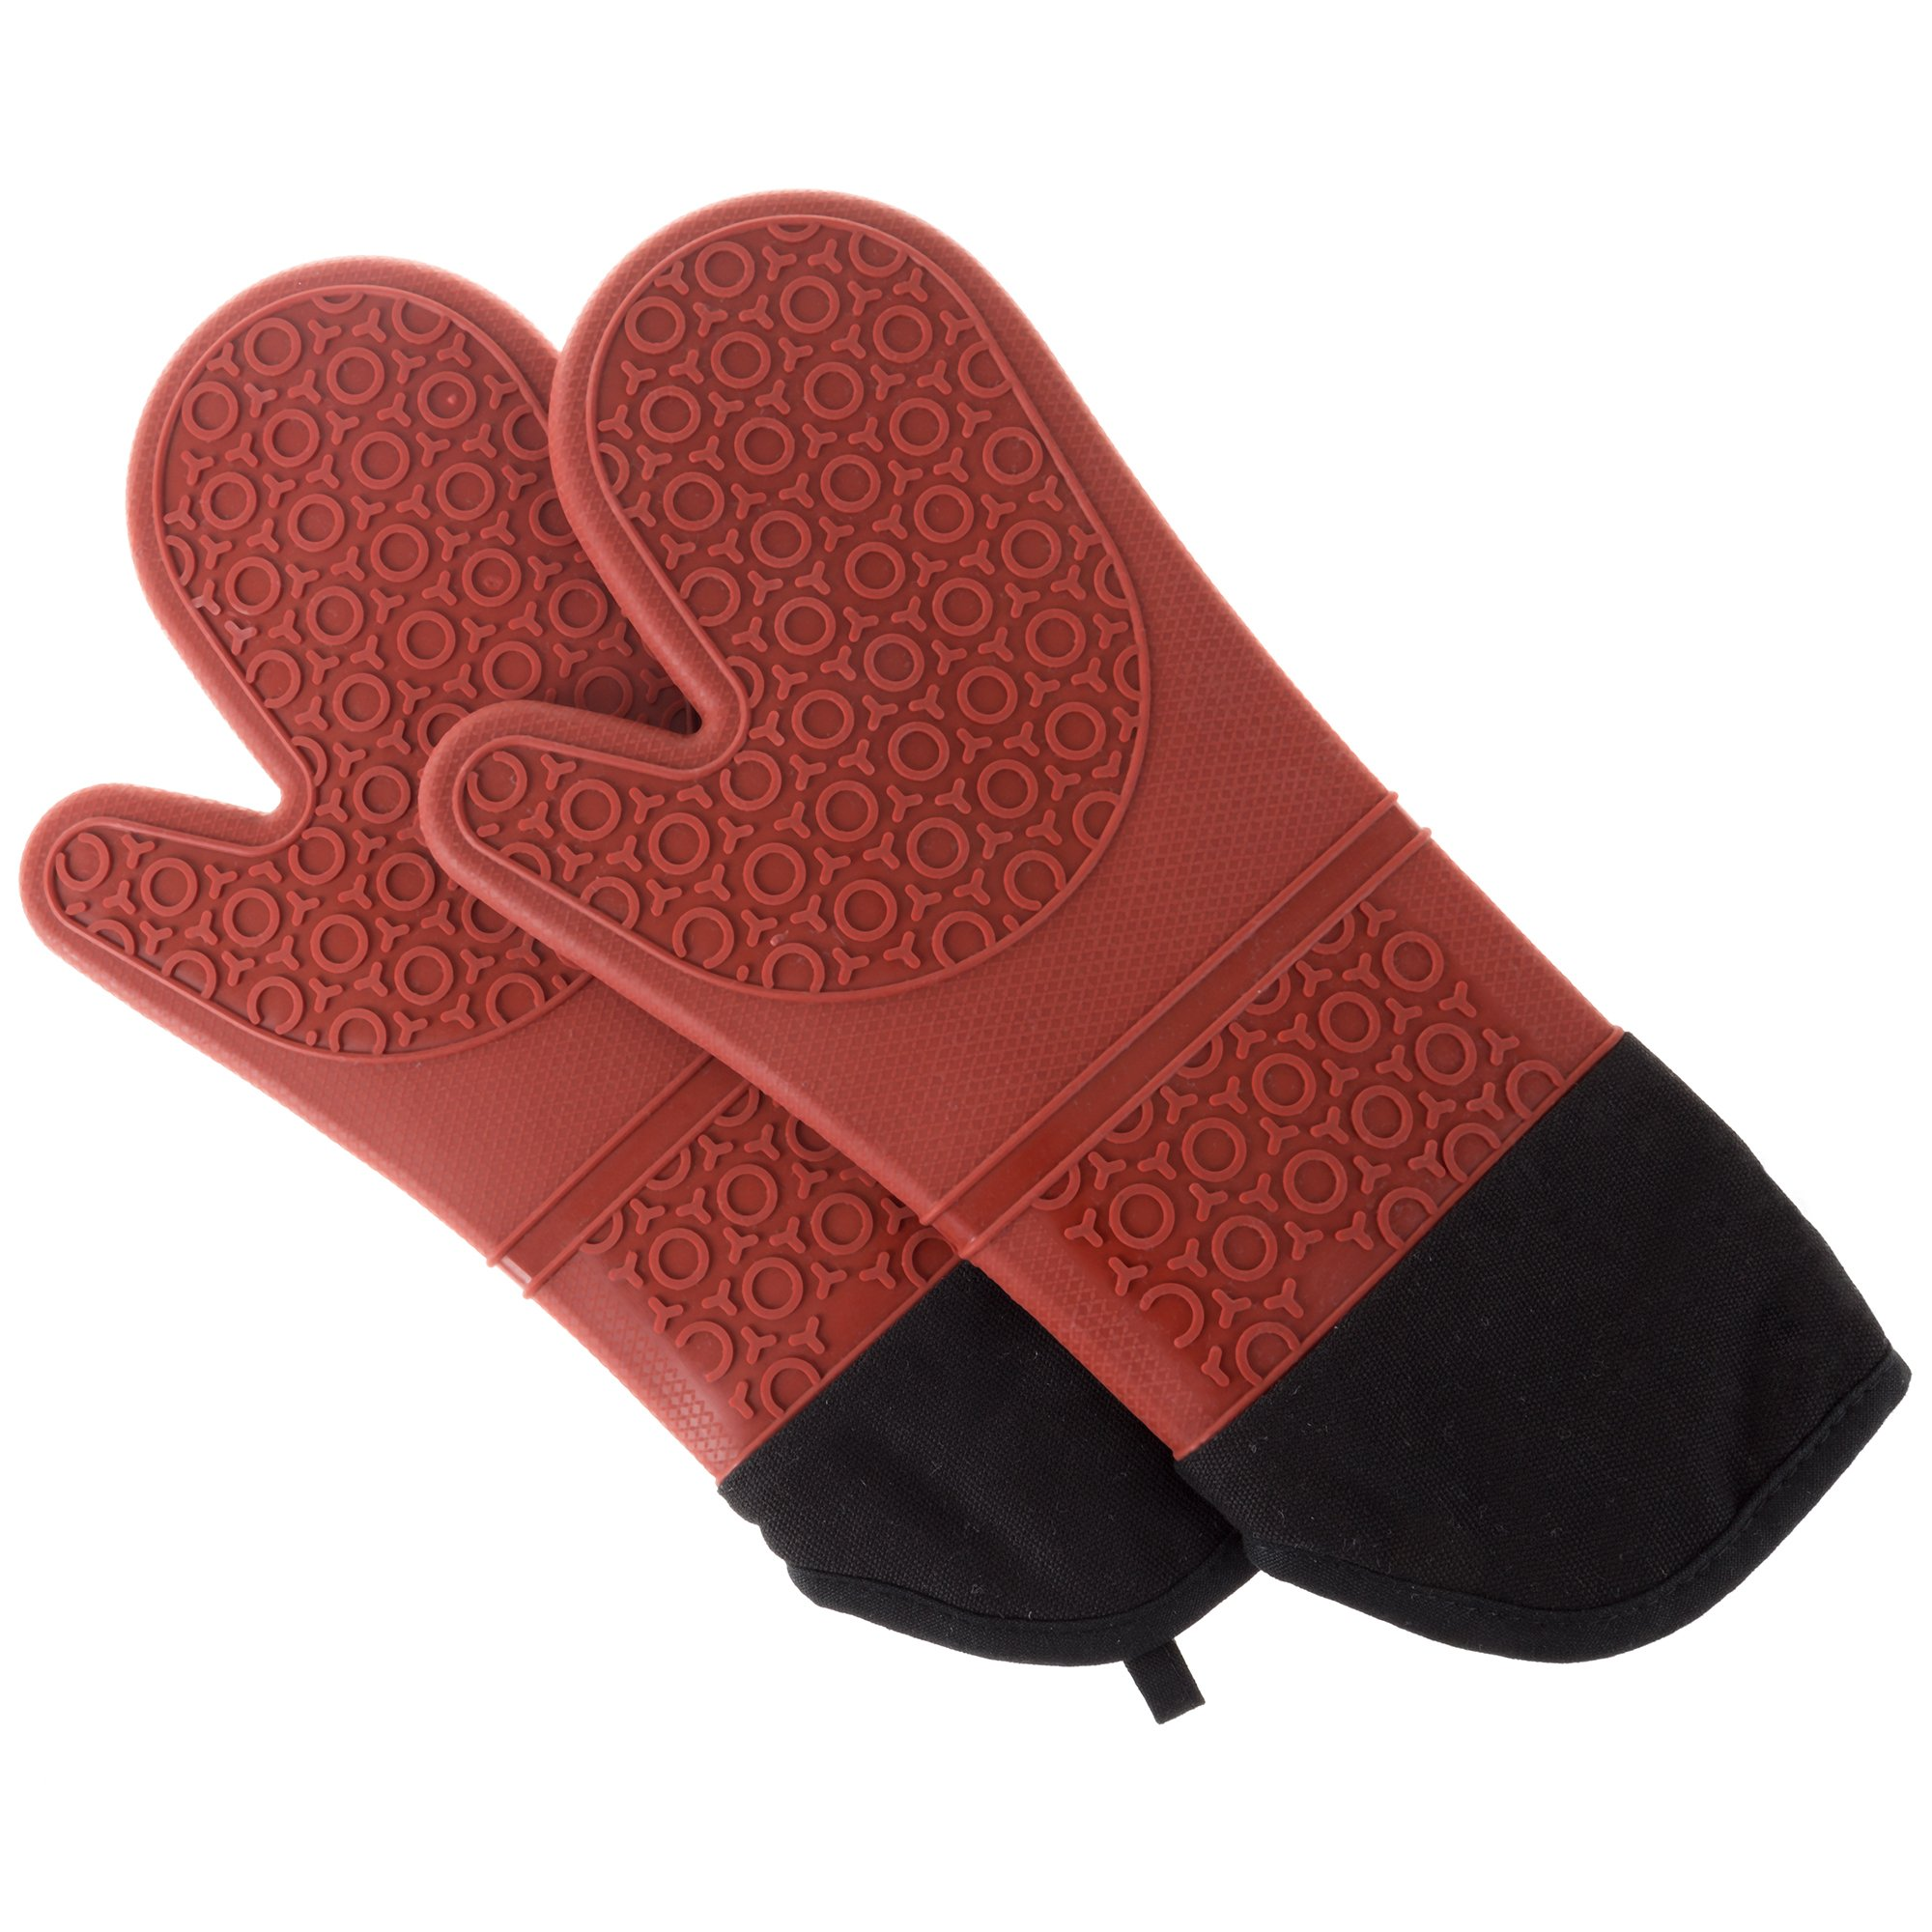 Silicone Oven Mitts – Extra Long Professional Quality Heat Resistant with Quilted Lining and 2-sided Textured Grip – 1 pair Dark Red by Lavish Home